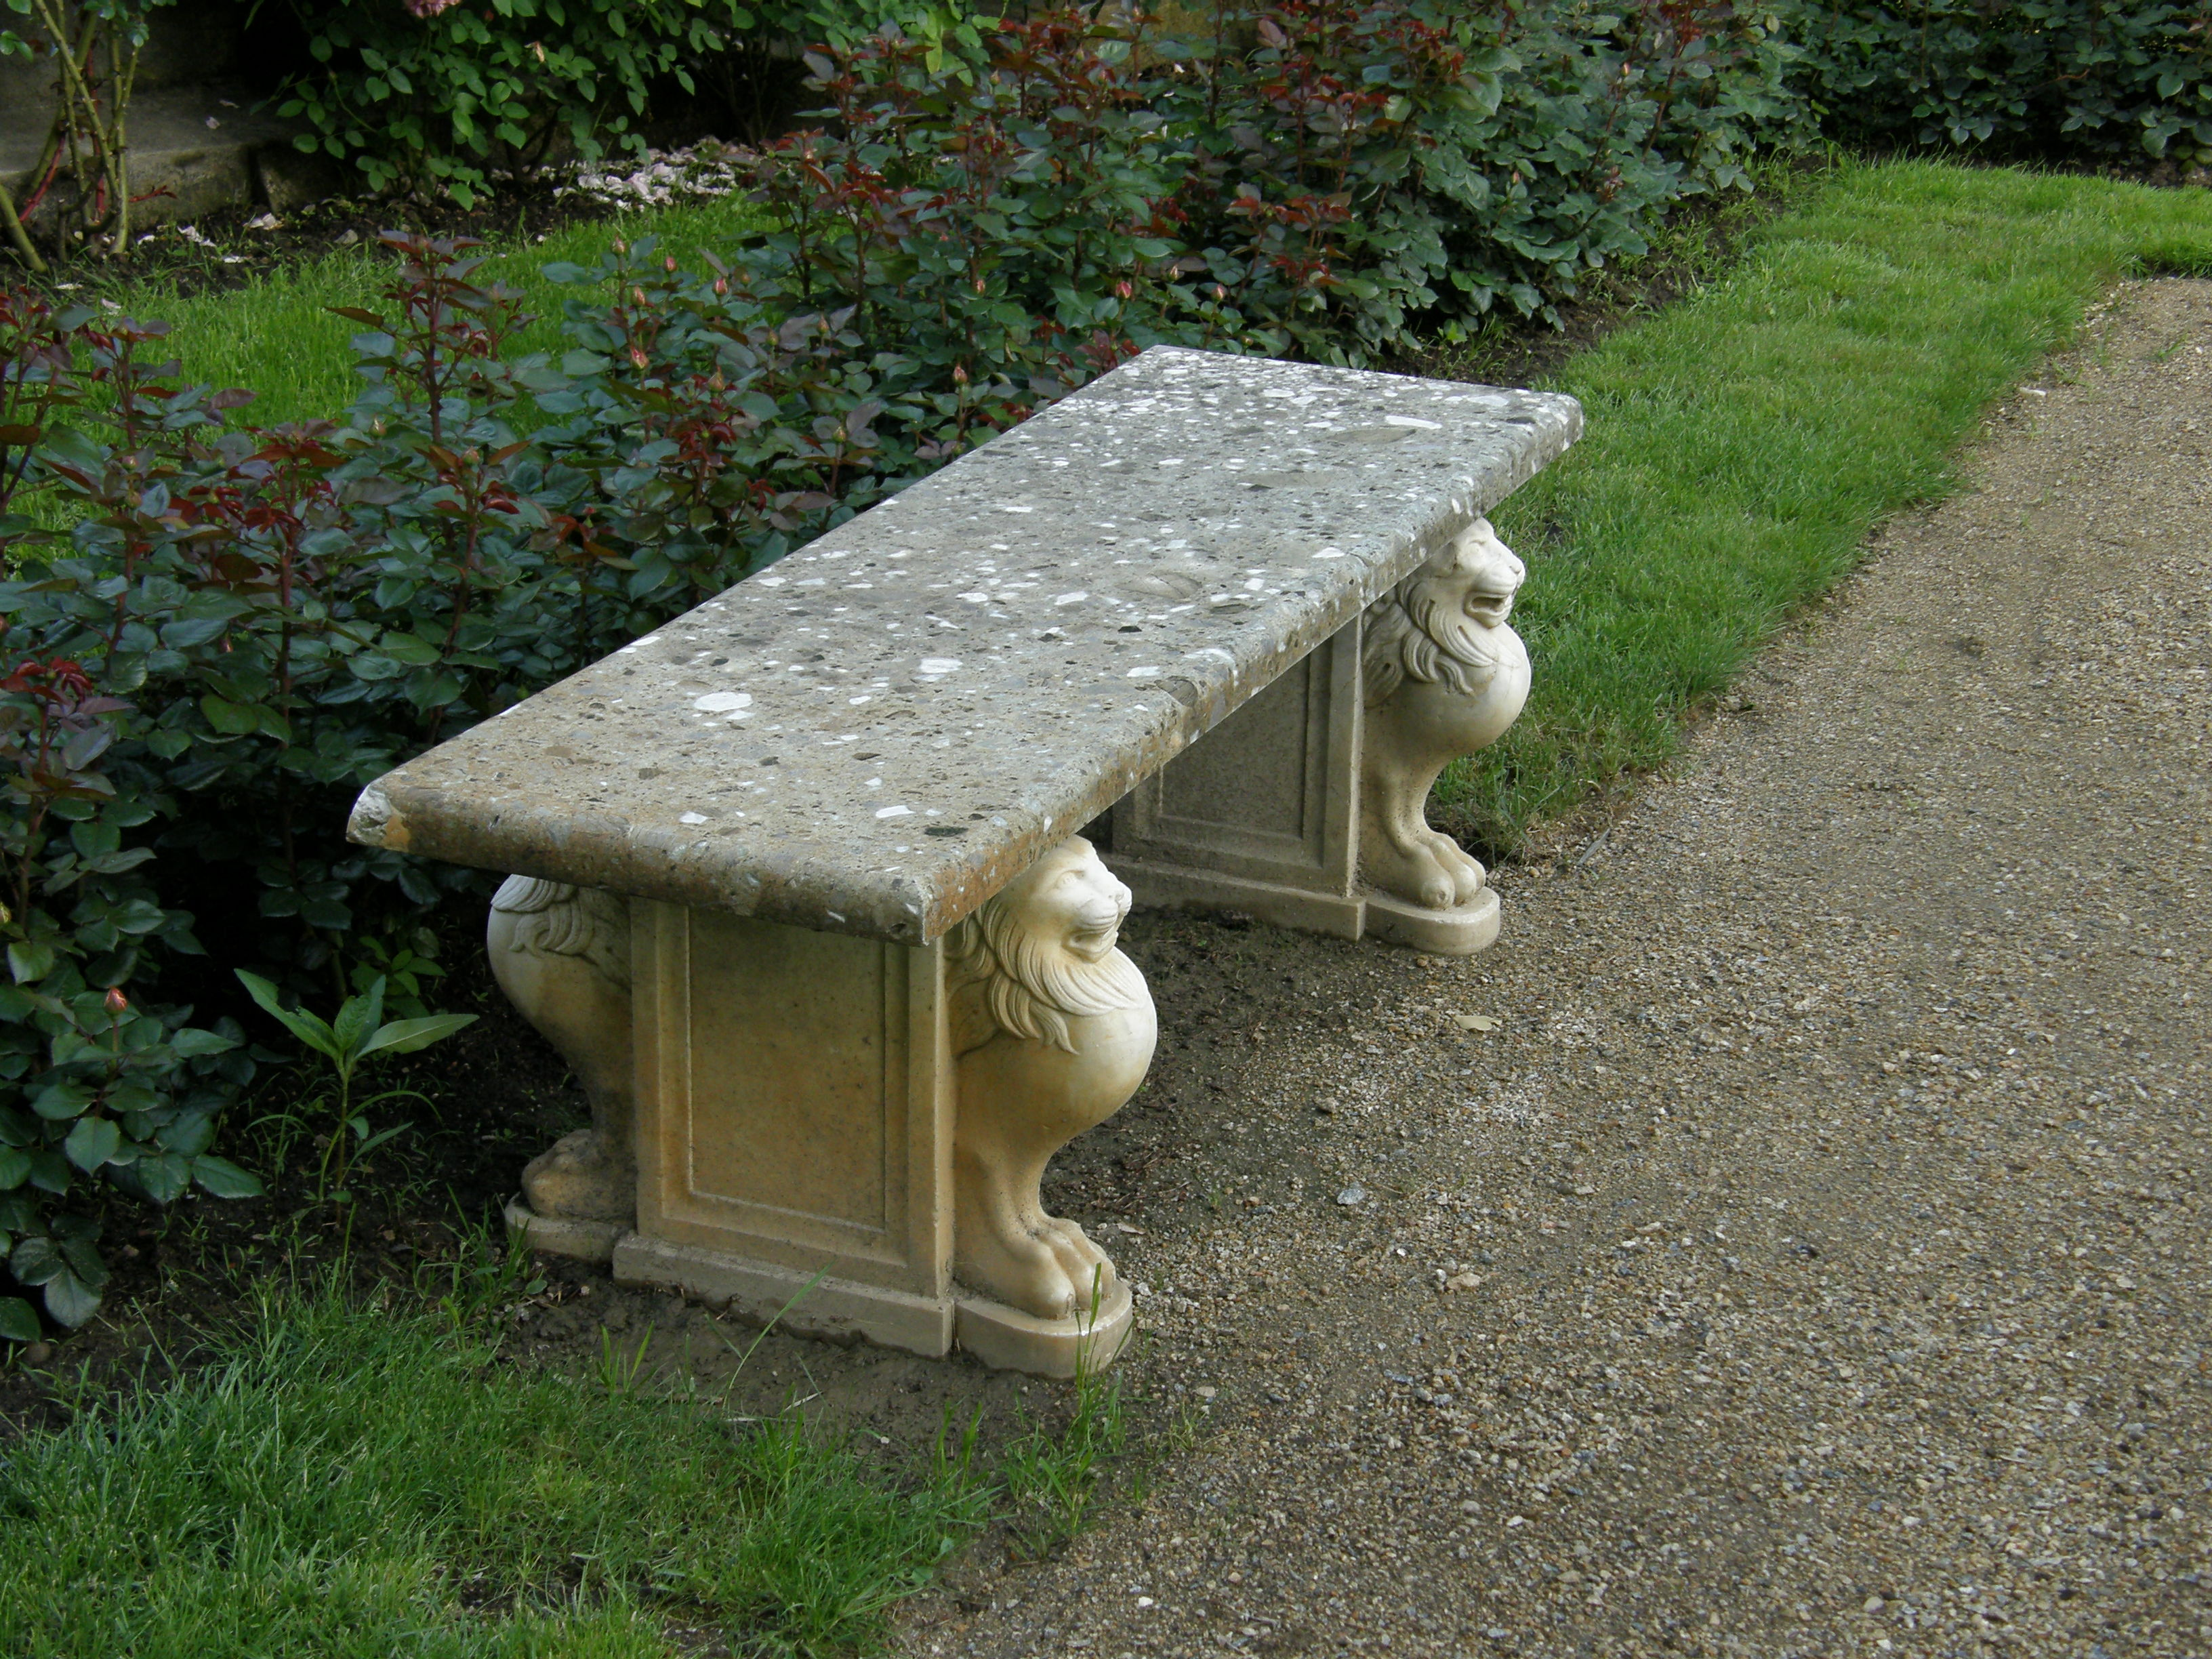 Concrete Garden Bench Buy Concrete Garden Bench With Table From Tridev Concrete Product Concrete